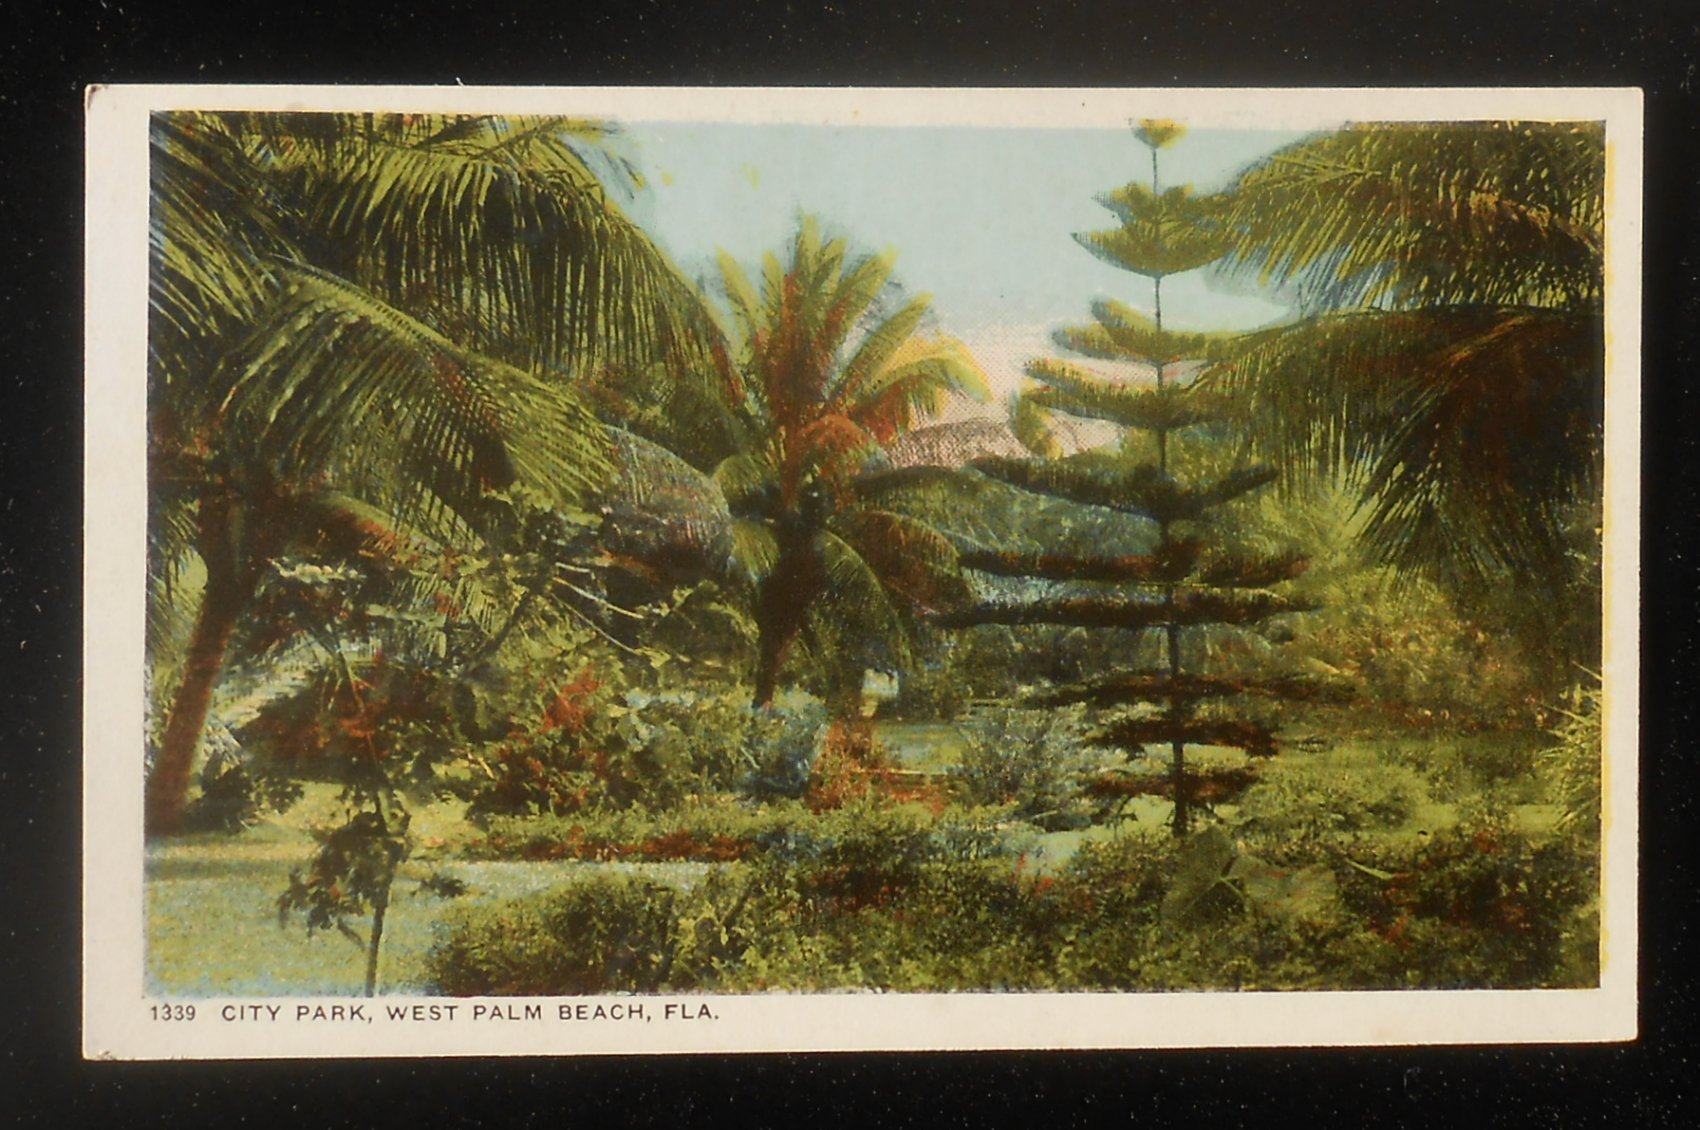 1910s City Park West Palm Beach Fl Palm Beach Co Postcard